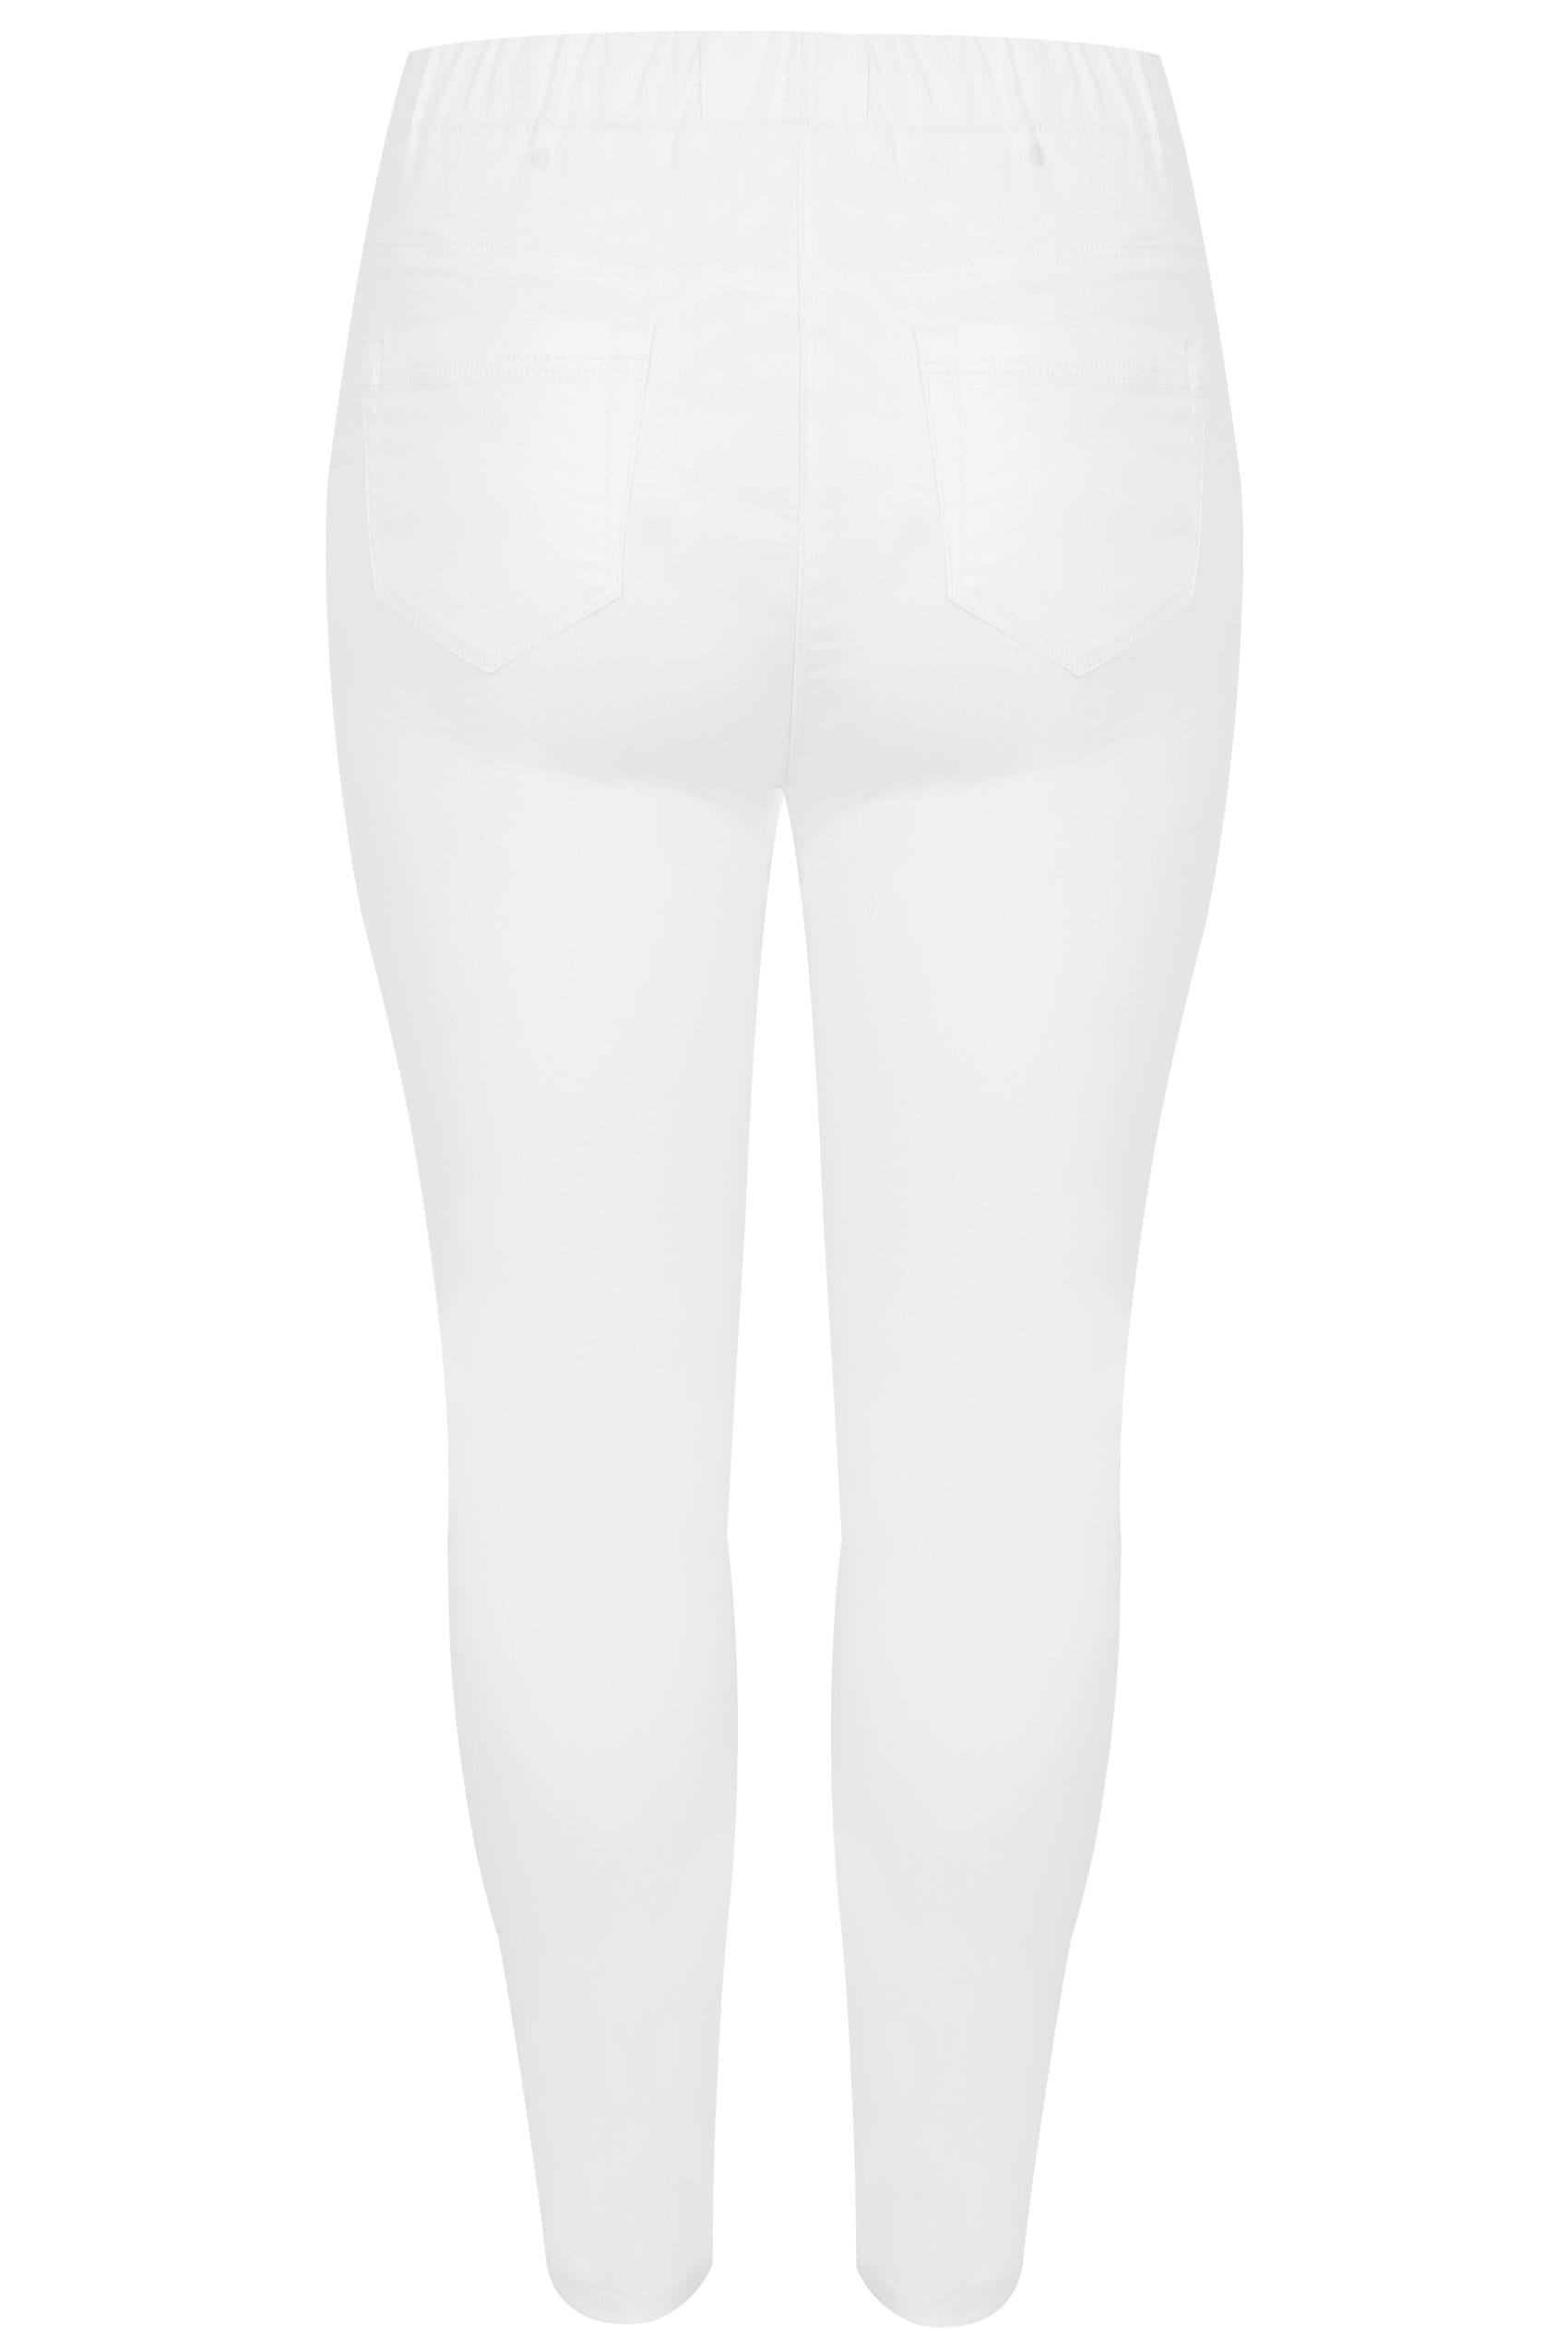 White Pull On Jenny Jeggings , Plus Size 16 To 36-4598